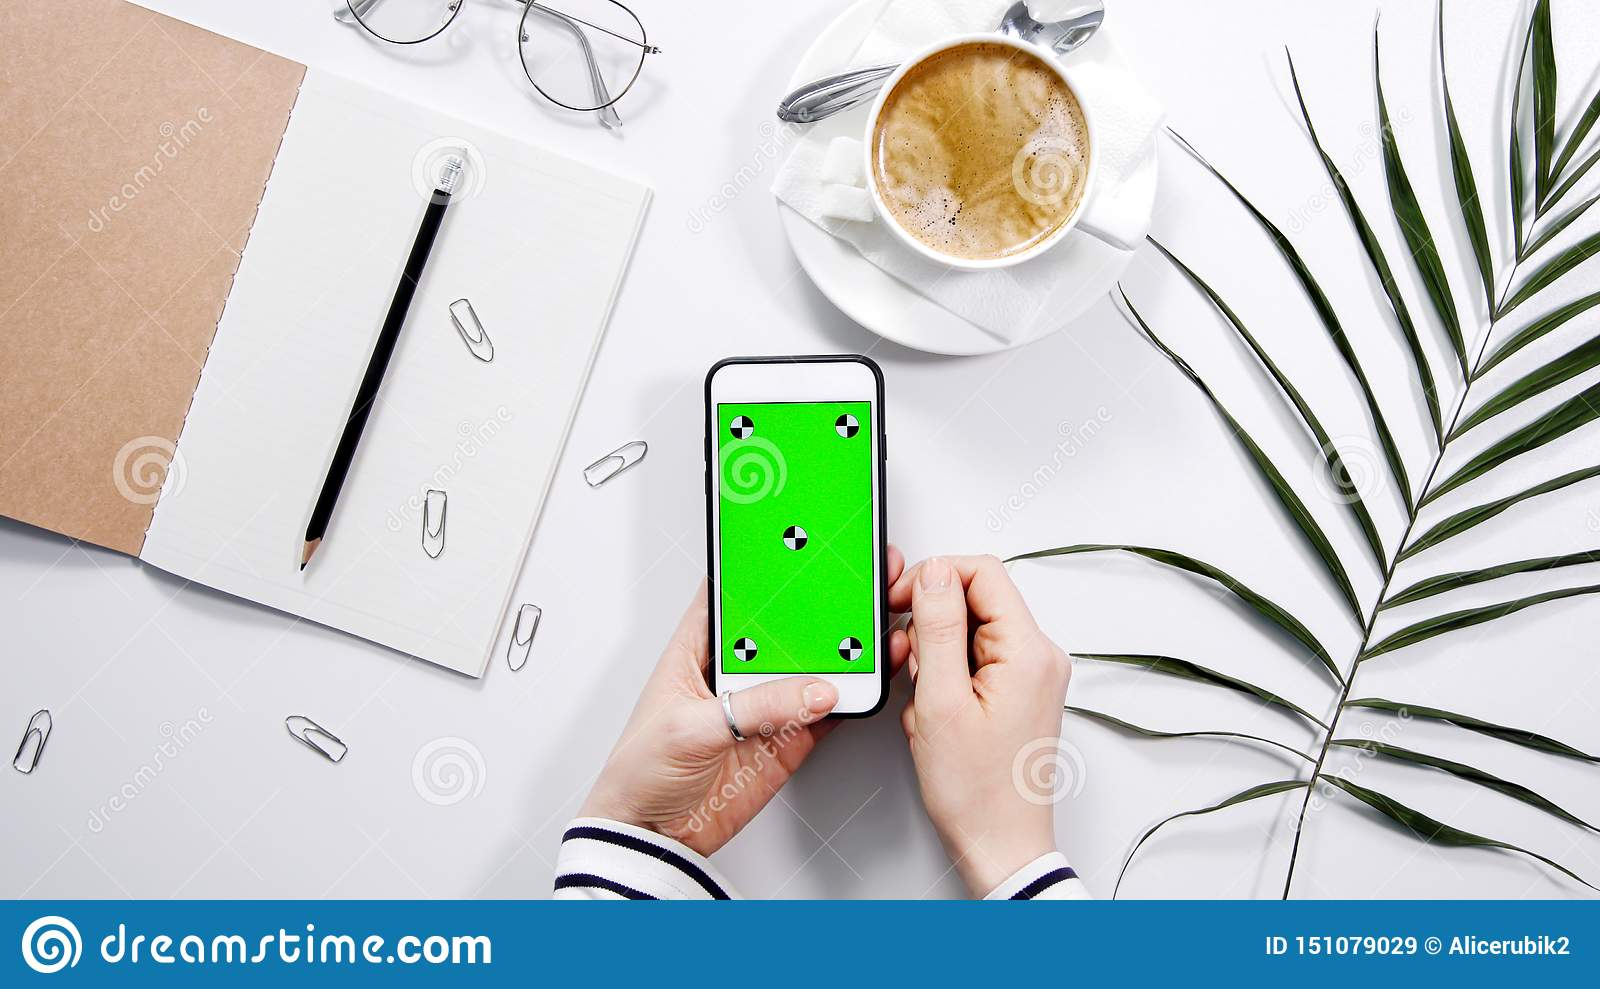 Hands holding a phone with a green screen. White background. Minimalism. Palm. Coffee break. Office look.